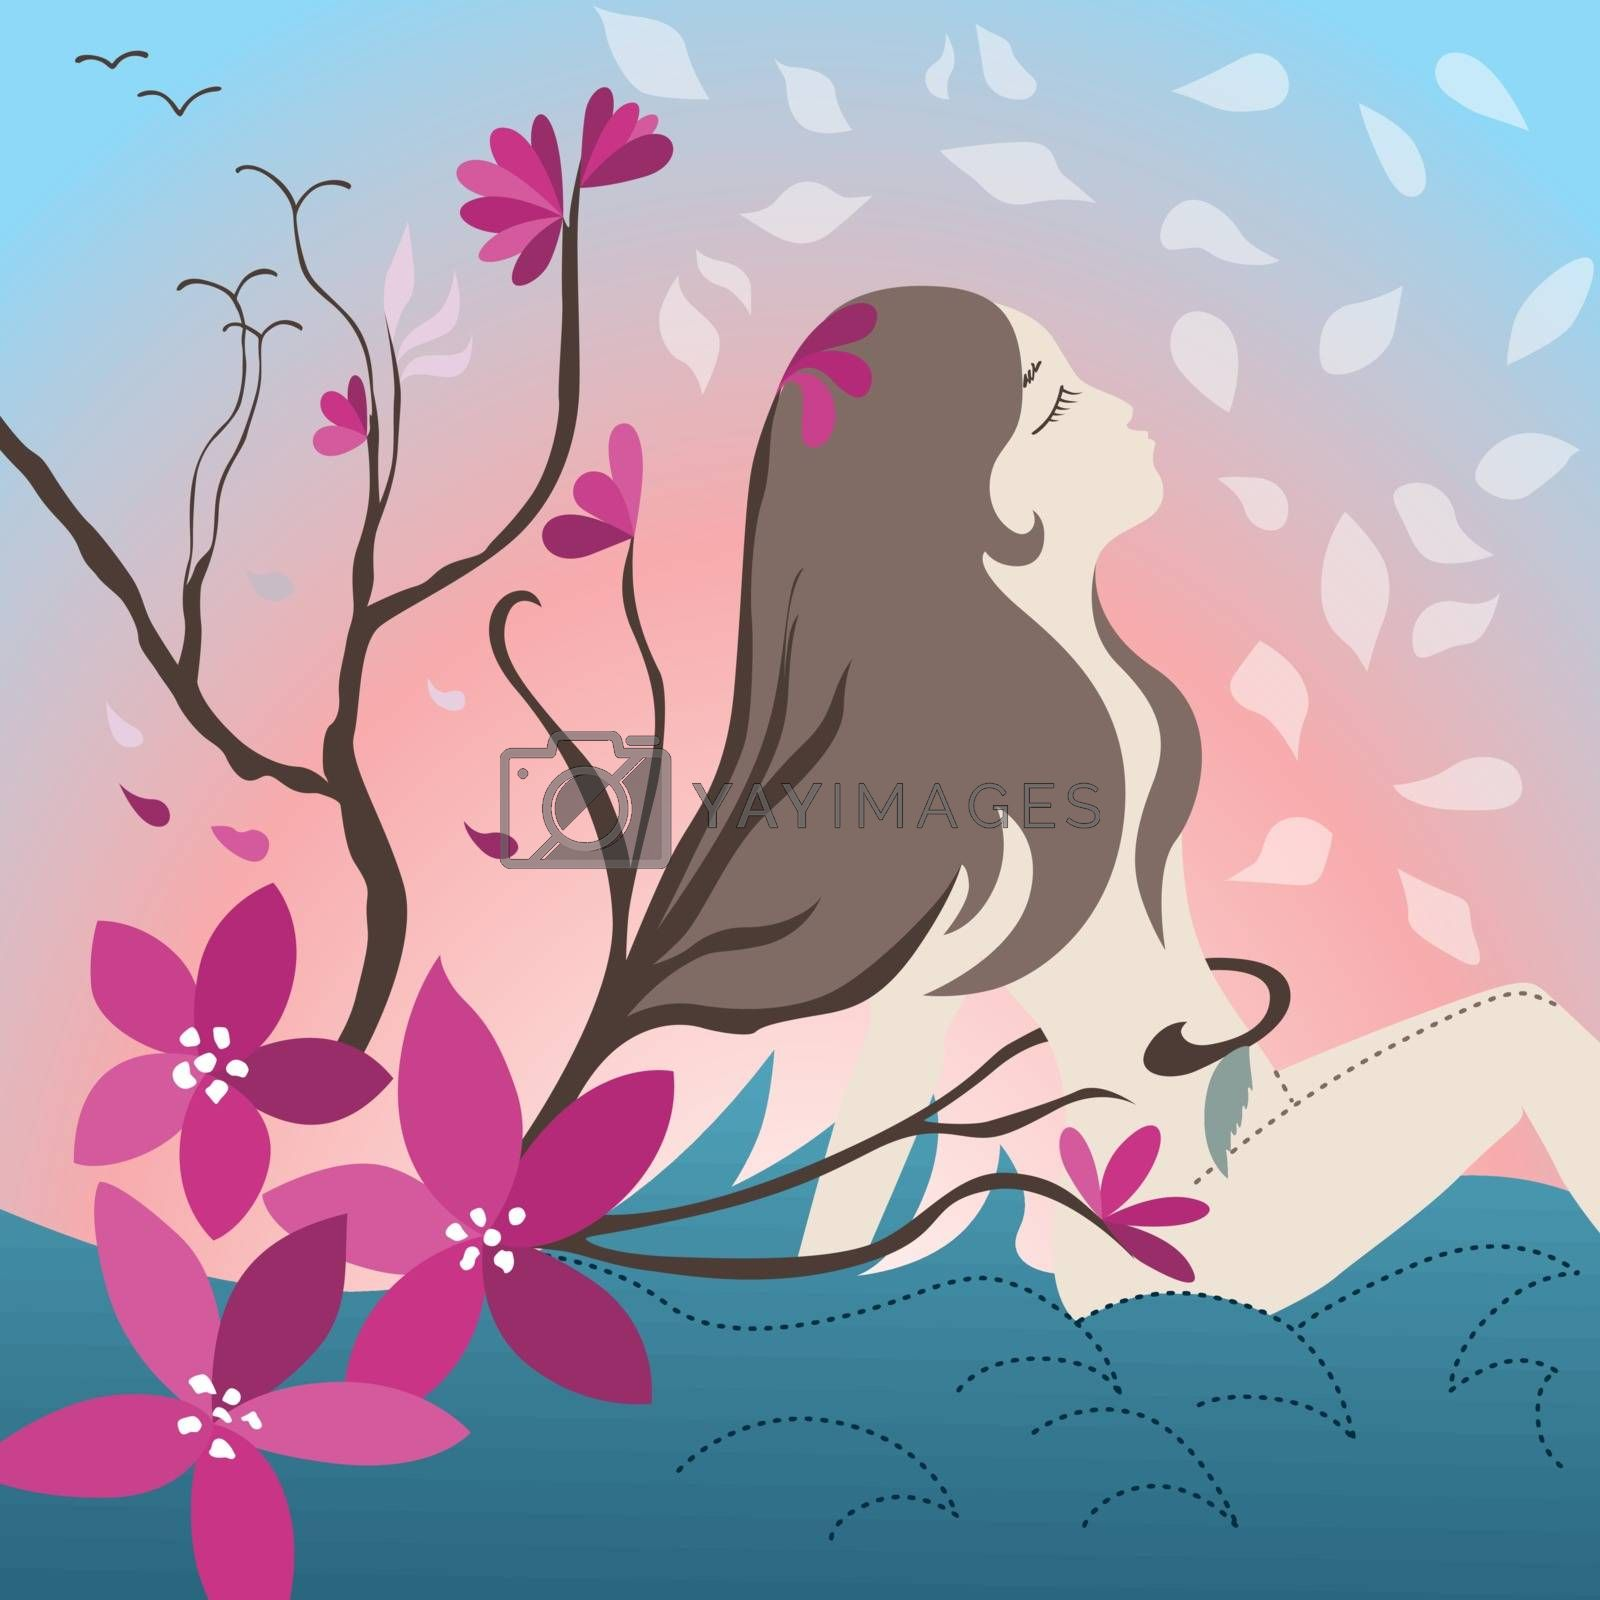 Royalty free image of Young girl with blossoming trees by kisika